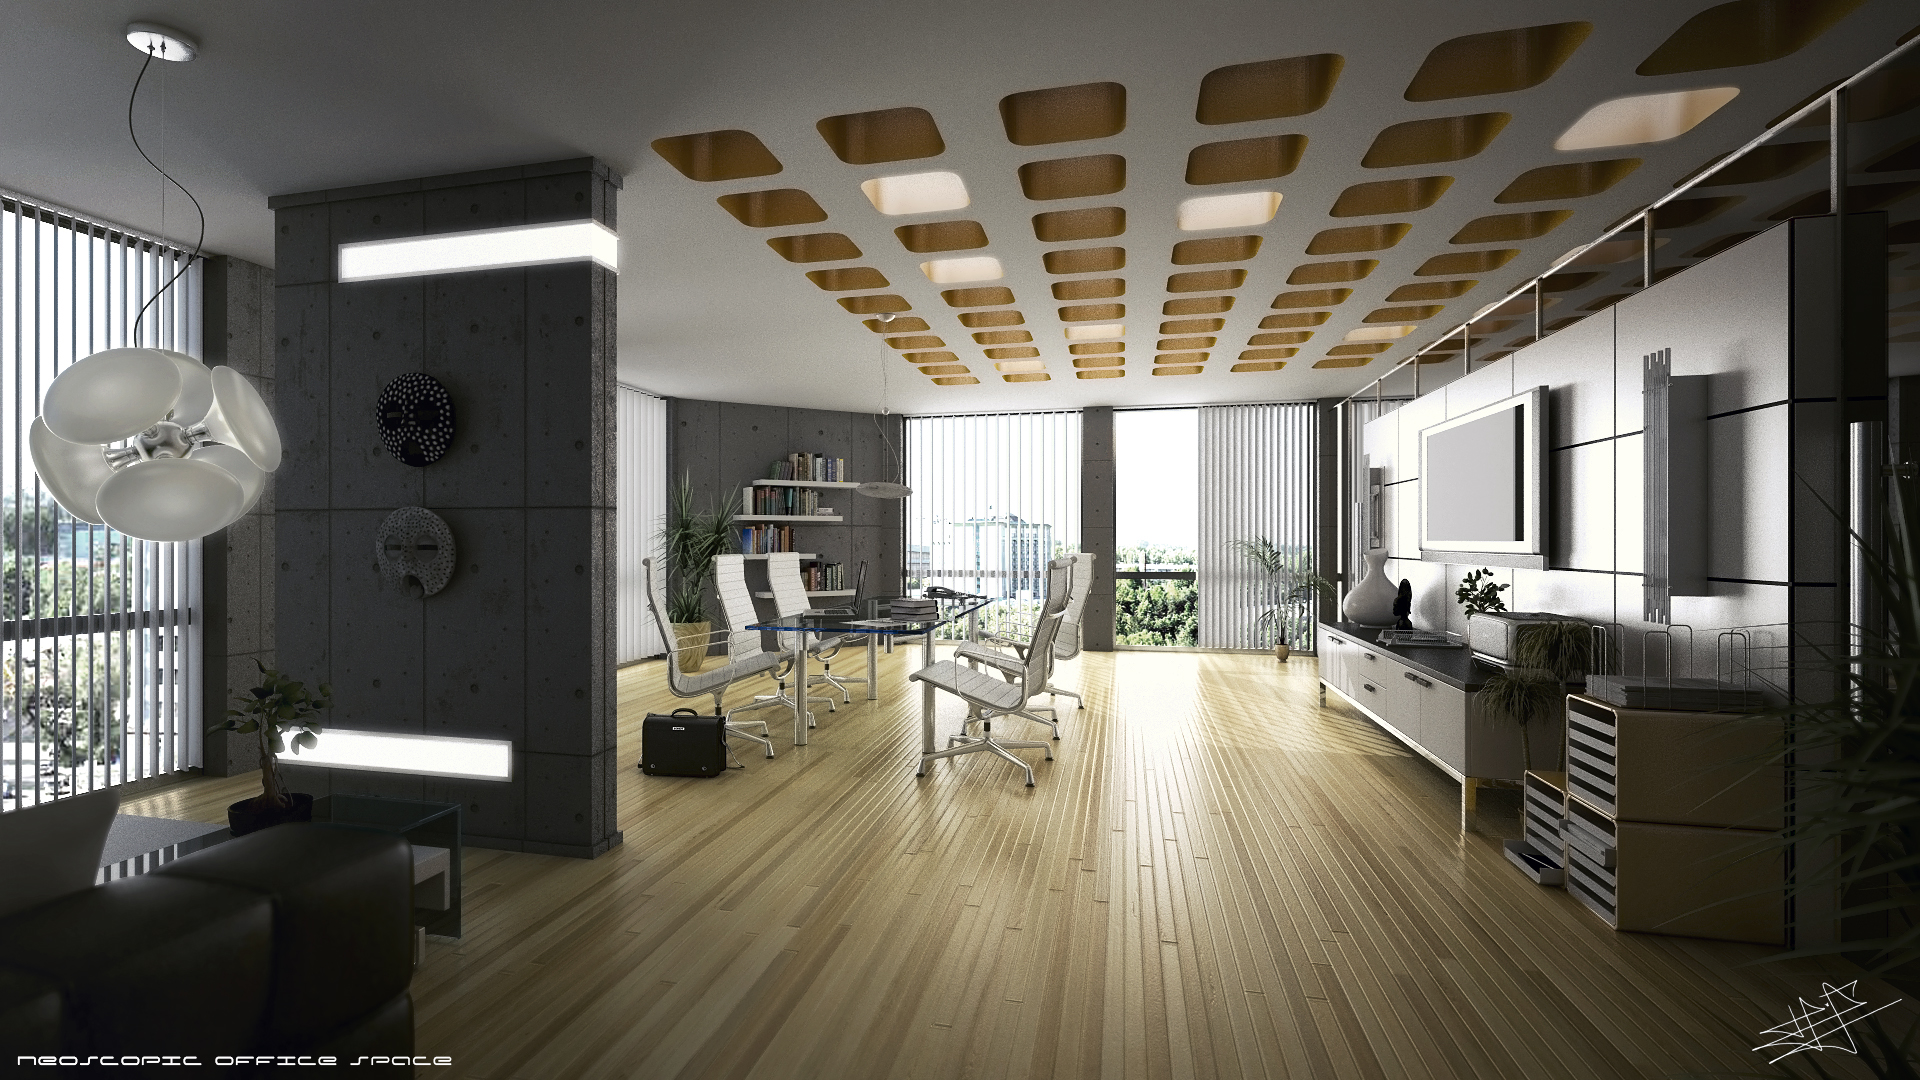 3d office space wallpaper - Office